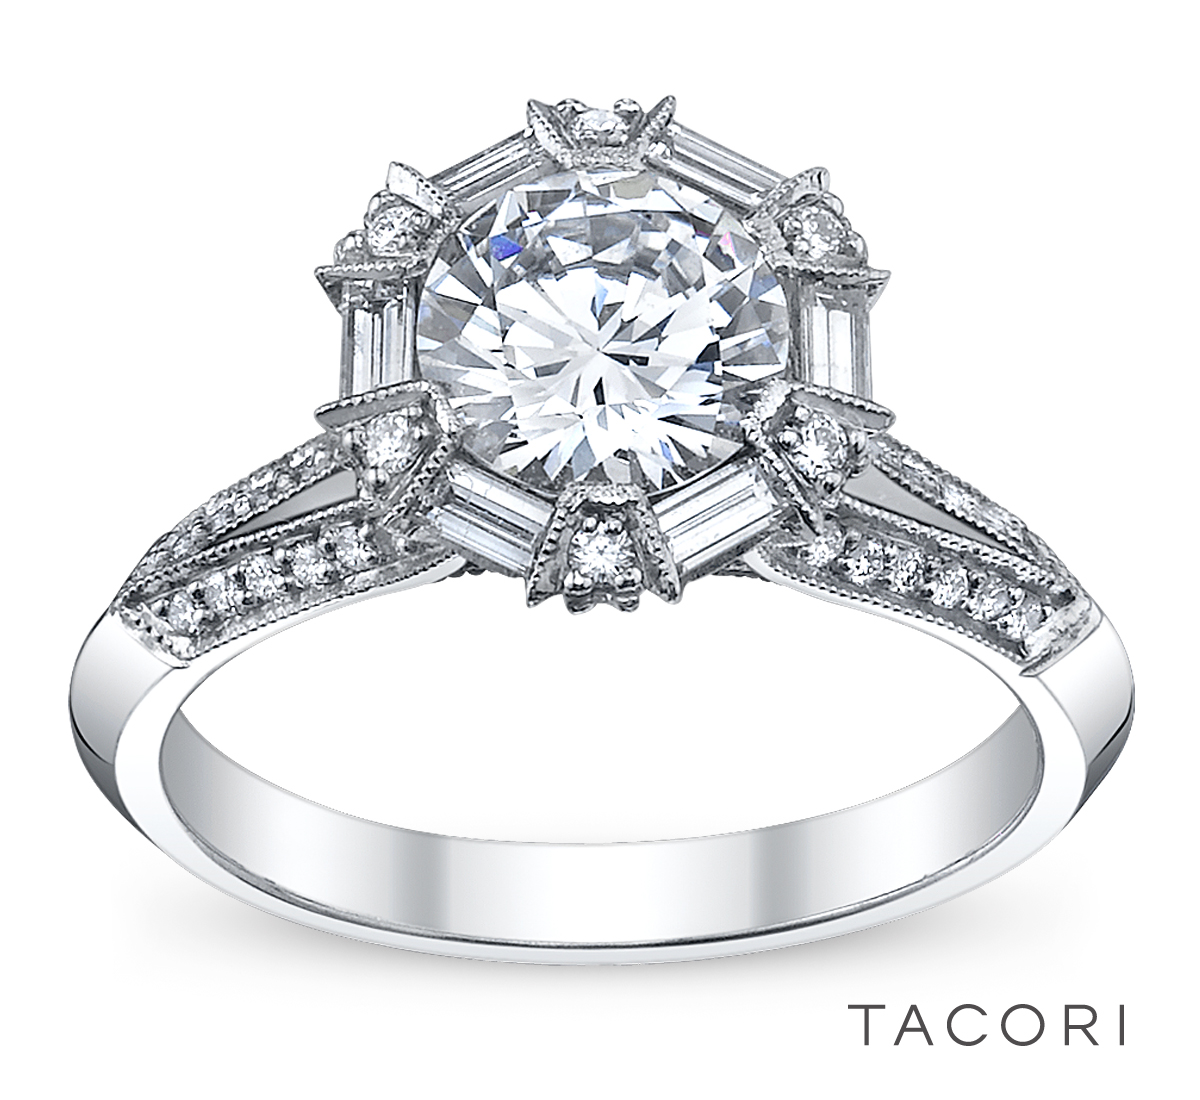 robbins brothers engagement ring of the day tacori